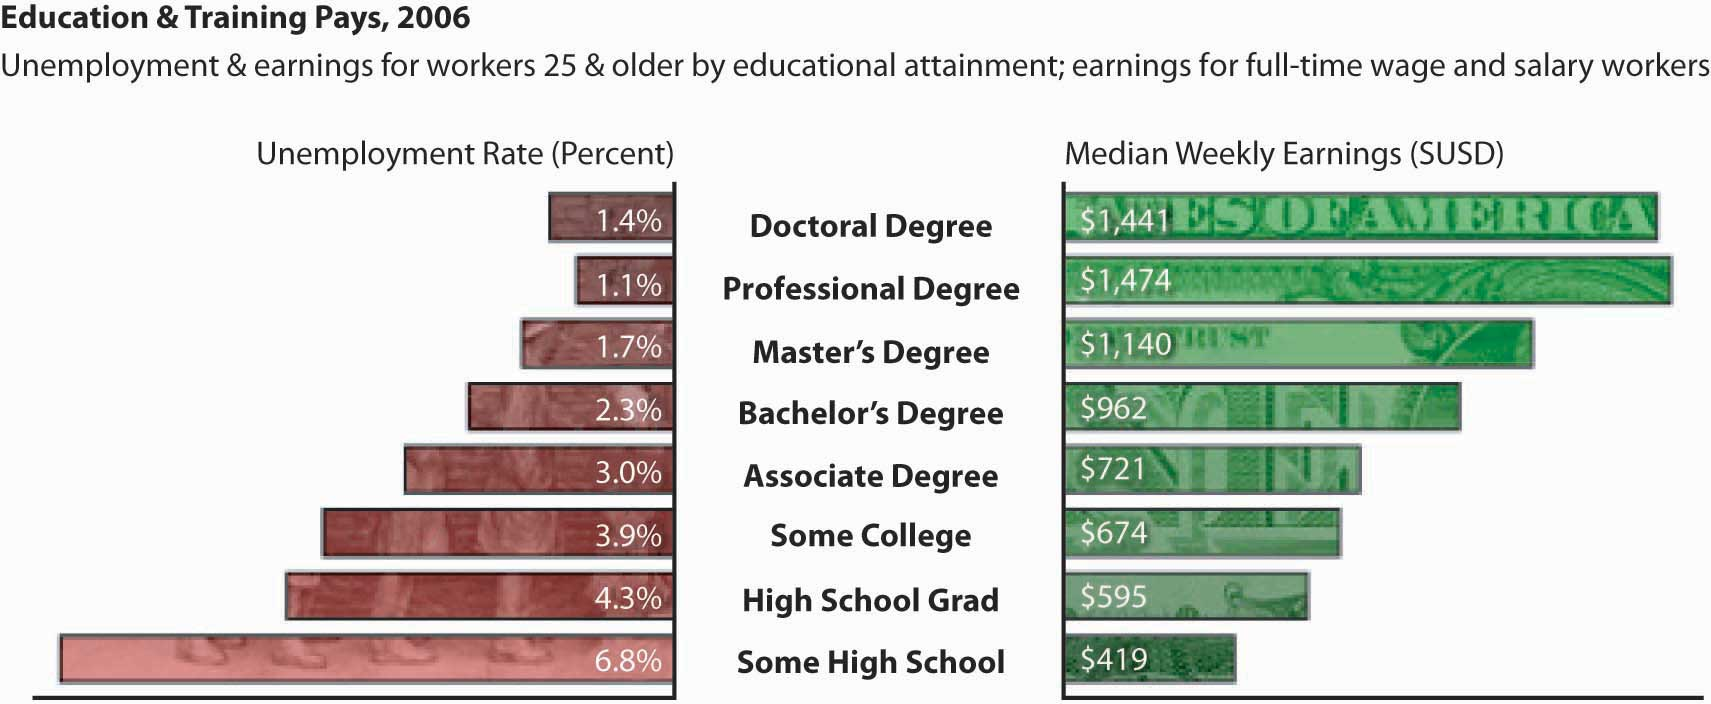 Education and training have financial payoffs as illustrated by these unemployment and earnings for workers 25 and older